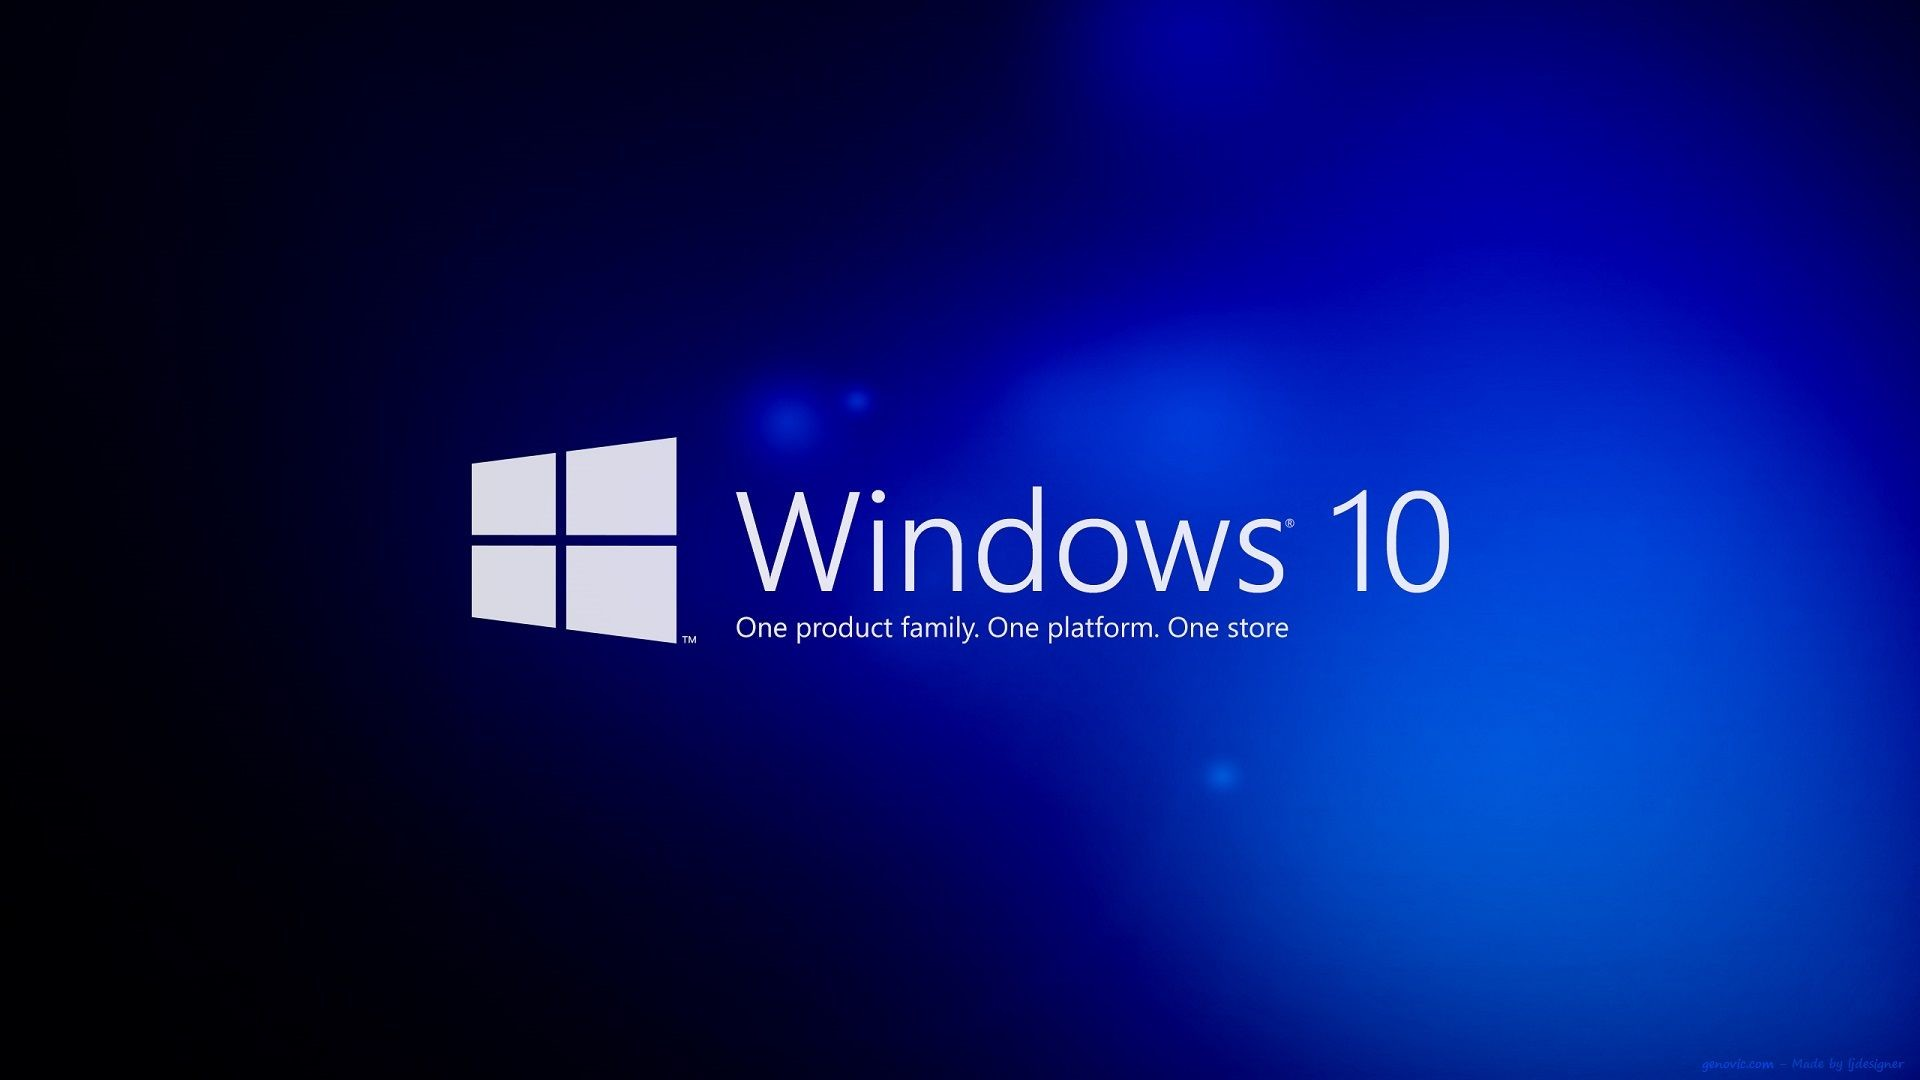 1920x1080 Are you looking for Windows 10 Wallpaper for your desktop backgrounds  widescreen computer? Ewallpaper Hub brings Windows 10 Wallpaper for you.